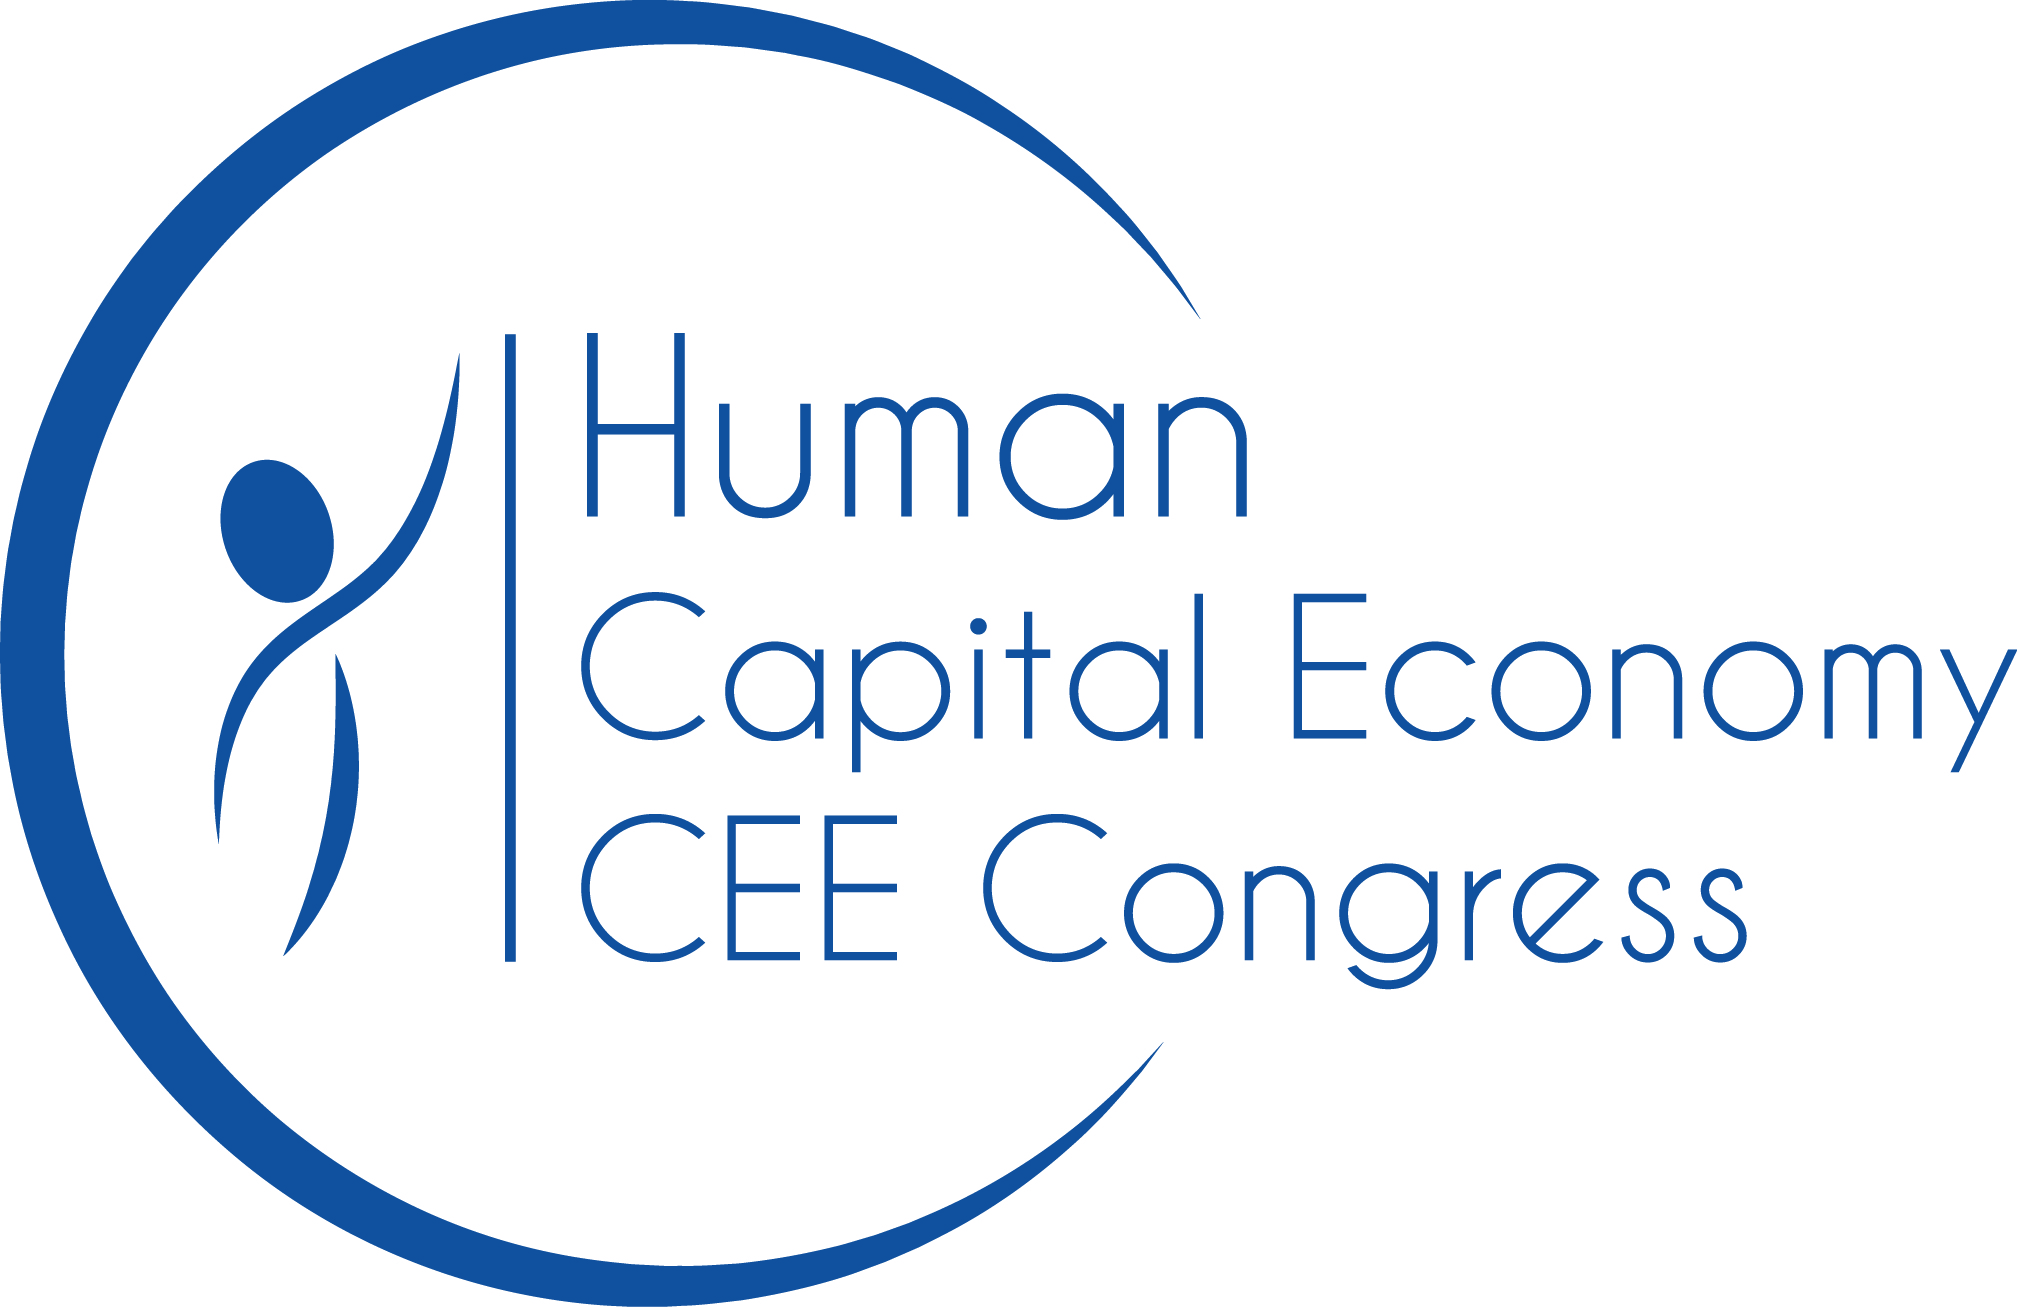 What is human capital 72